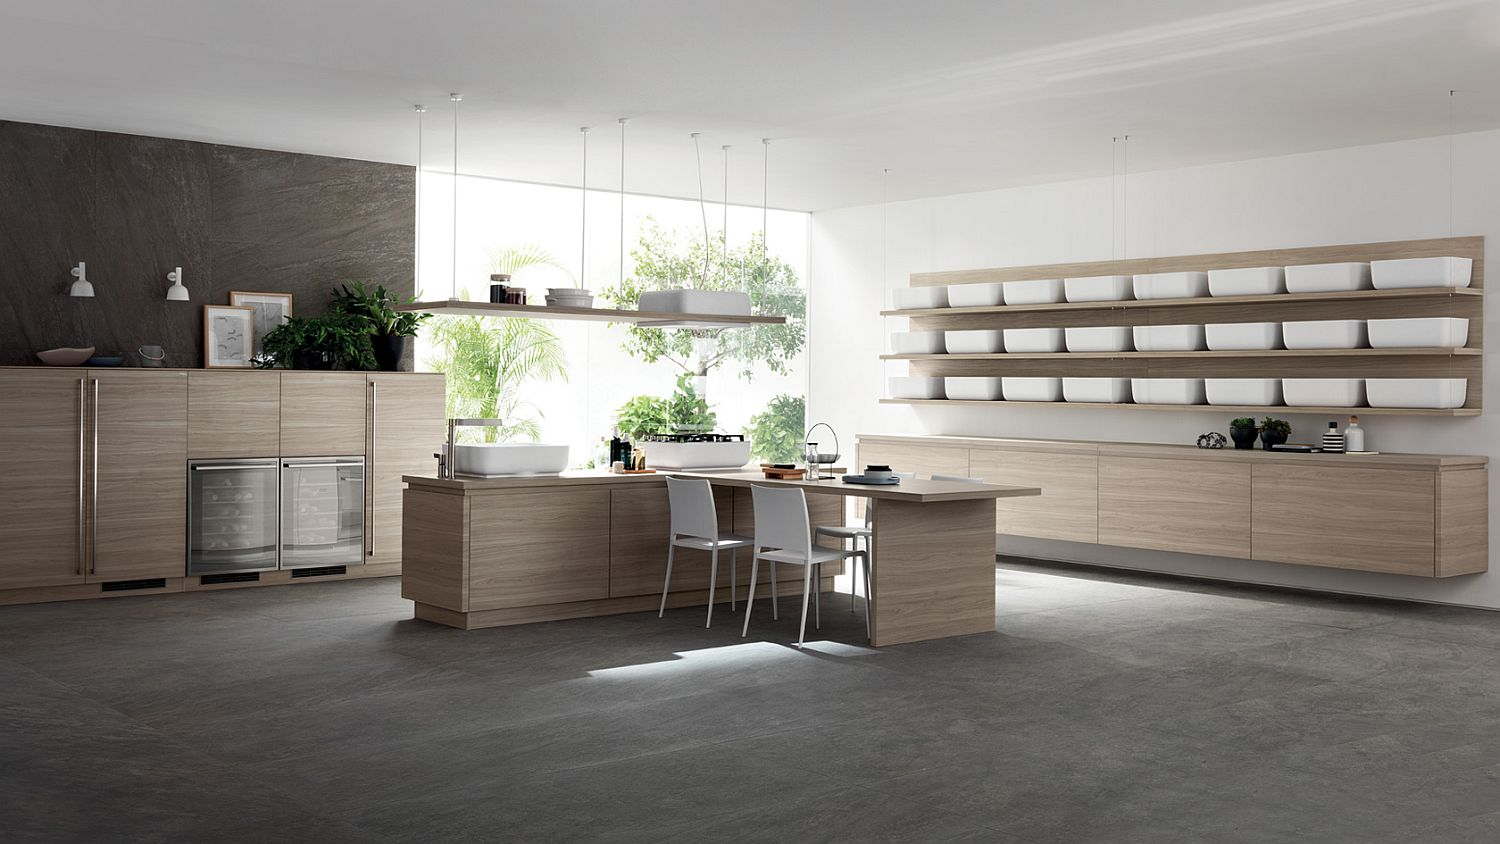 View in gallery Japanese ... & Inspired by Japanese Minimalism: Posh Scavolini Kitchen Conceals It All!